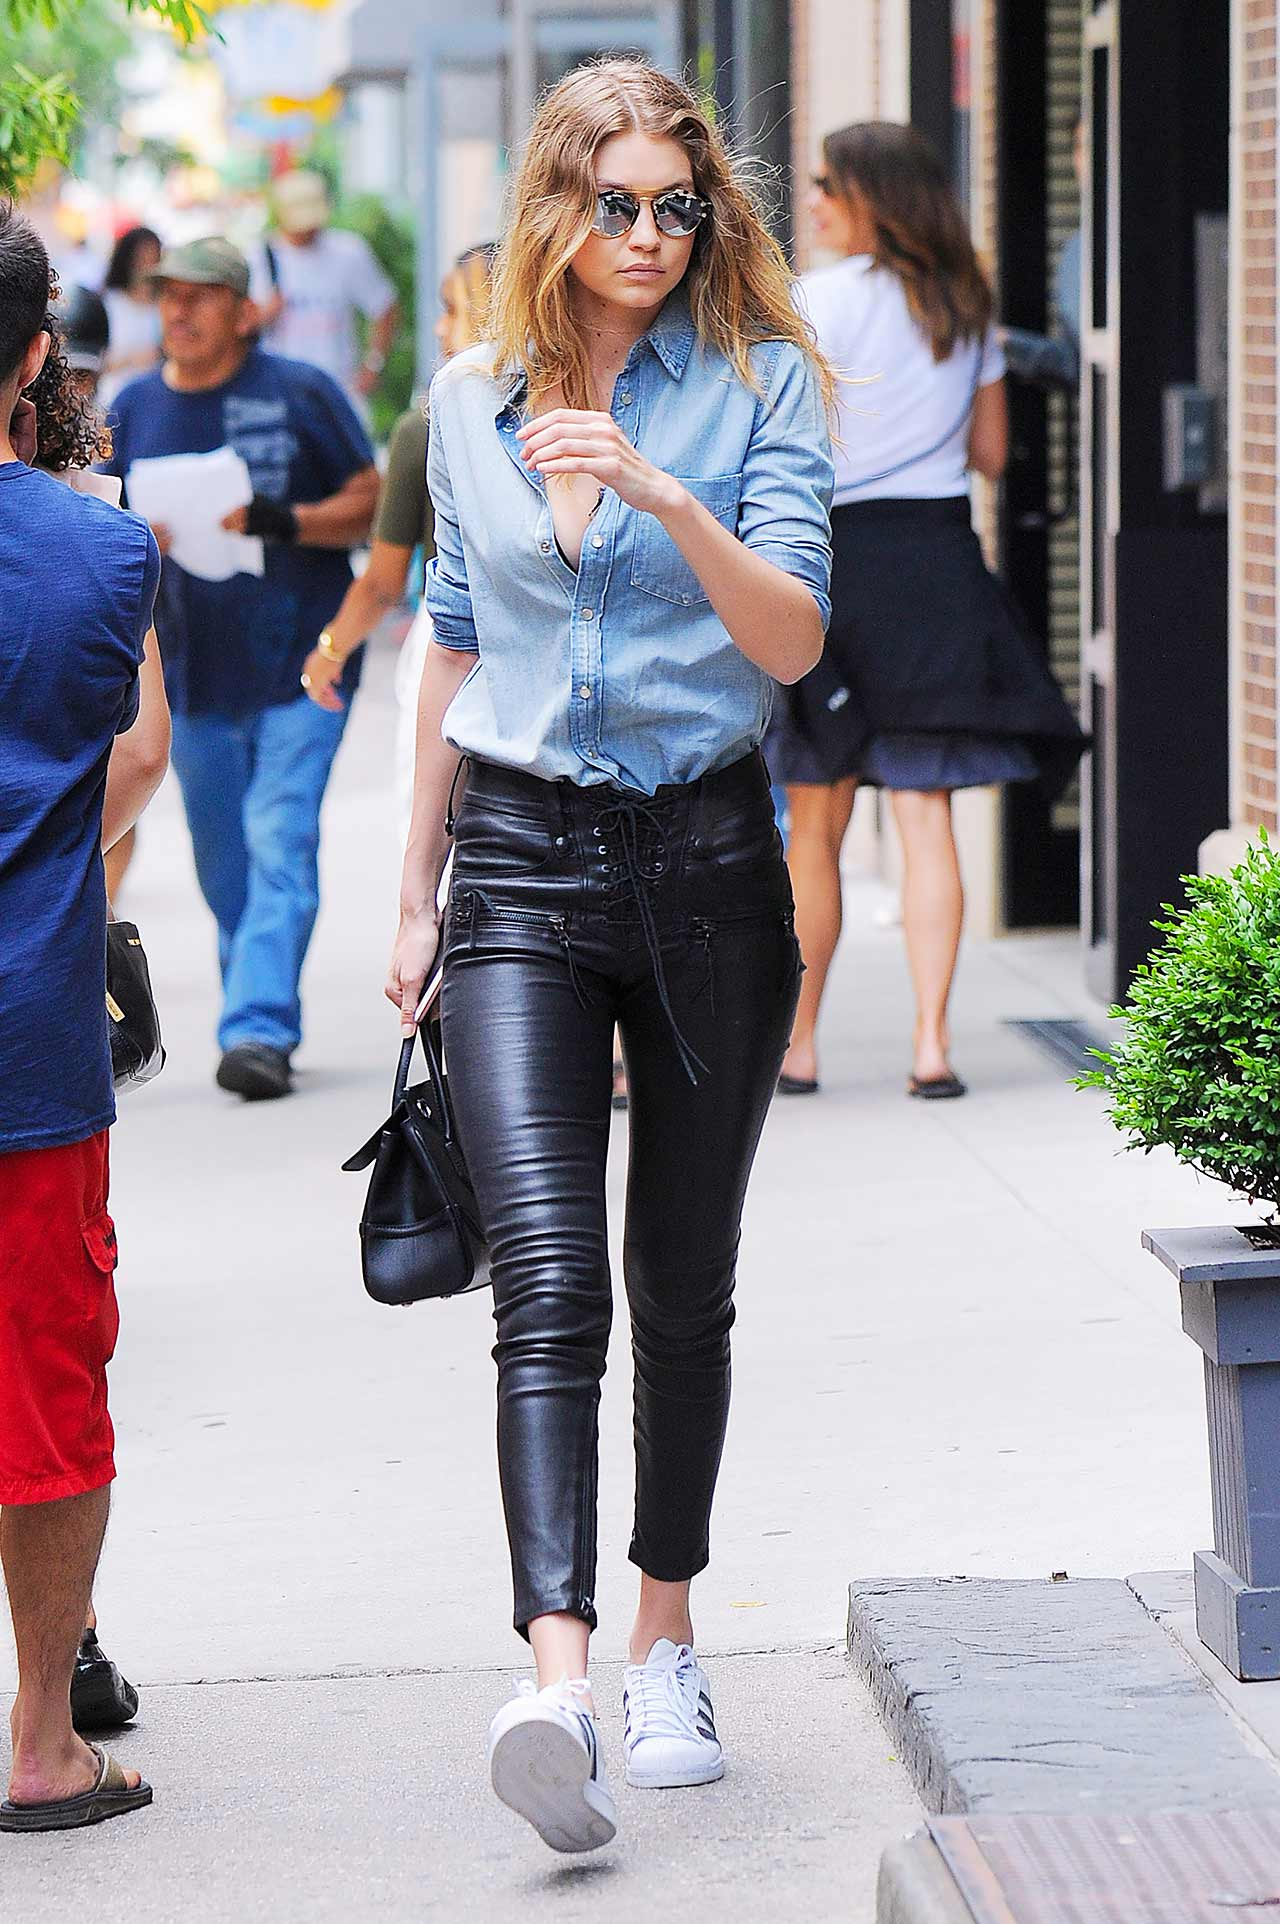 gigi-hadid-unravel-lace-up-leather-pants-mother-denim-shirt